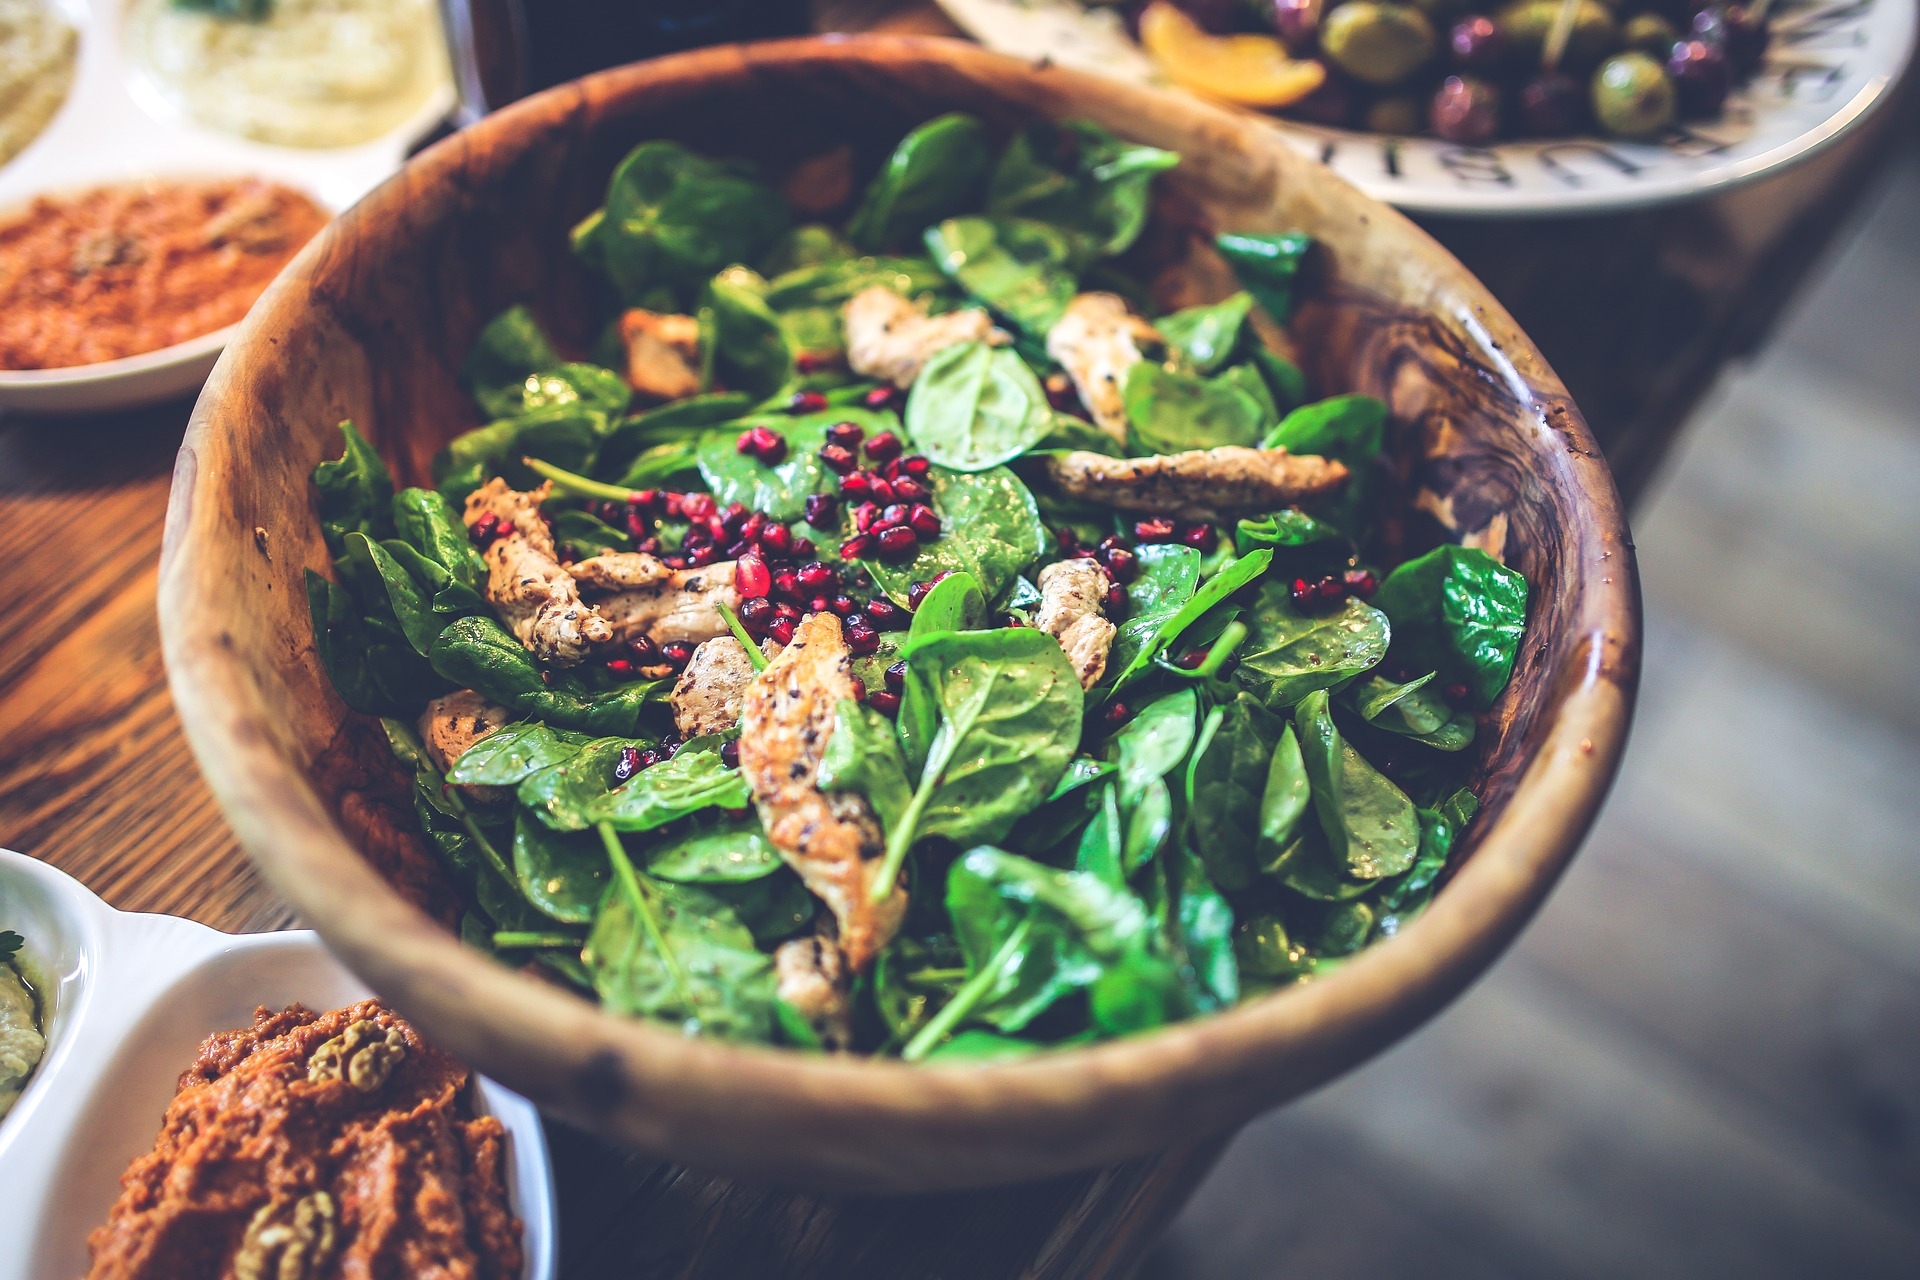 7 Tried-and-True Strategies to Cultivate Healthy Eating Habits